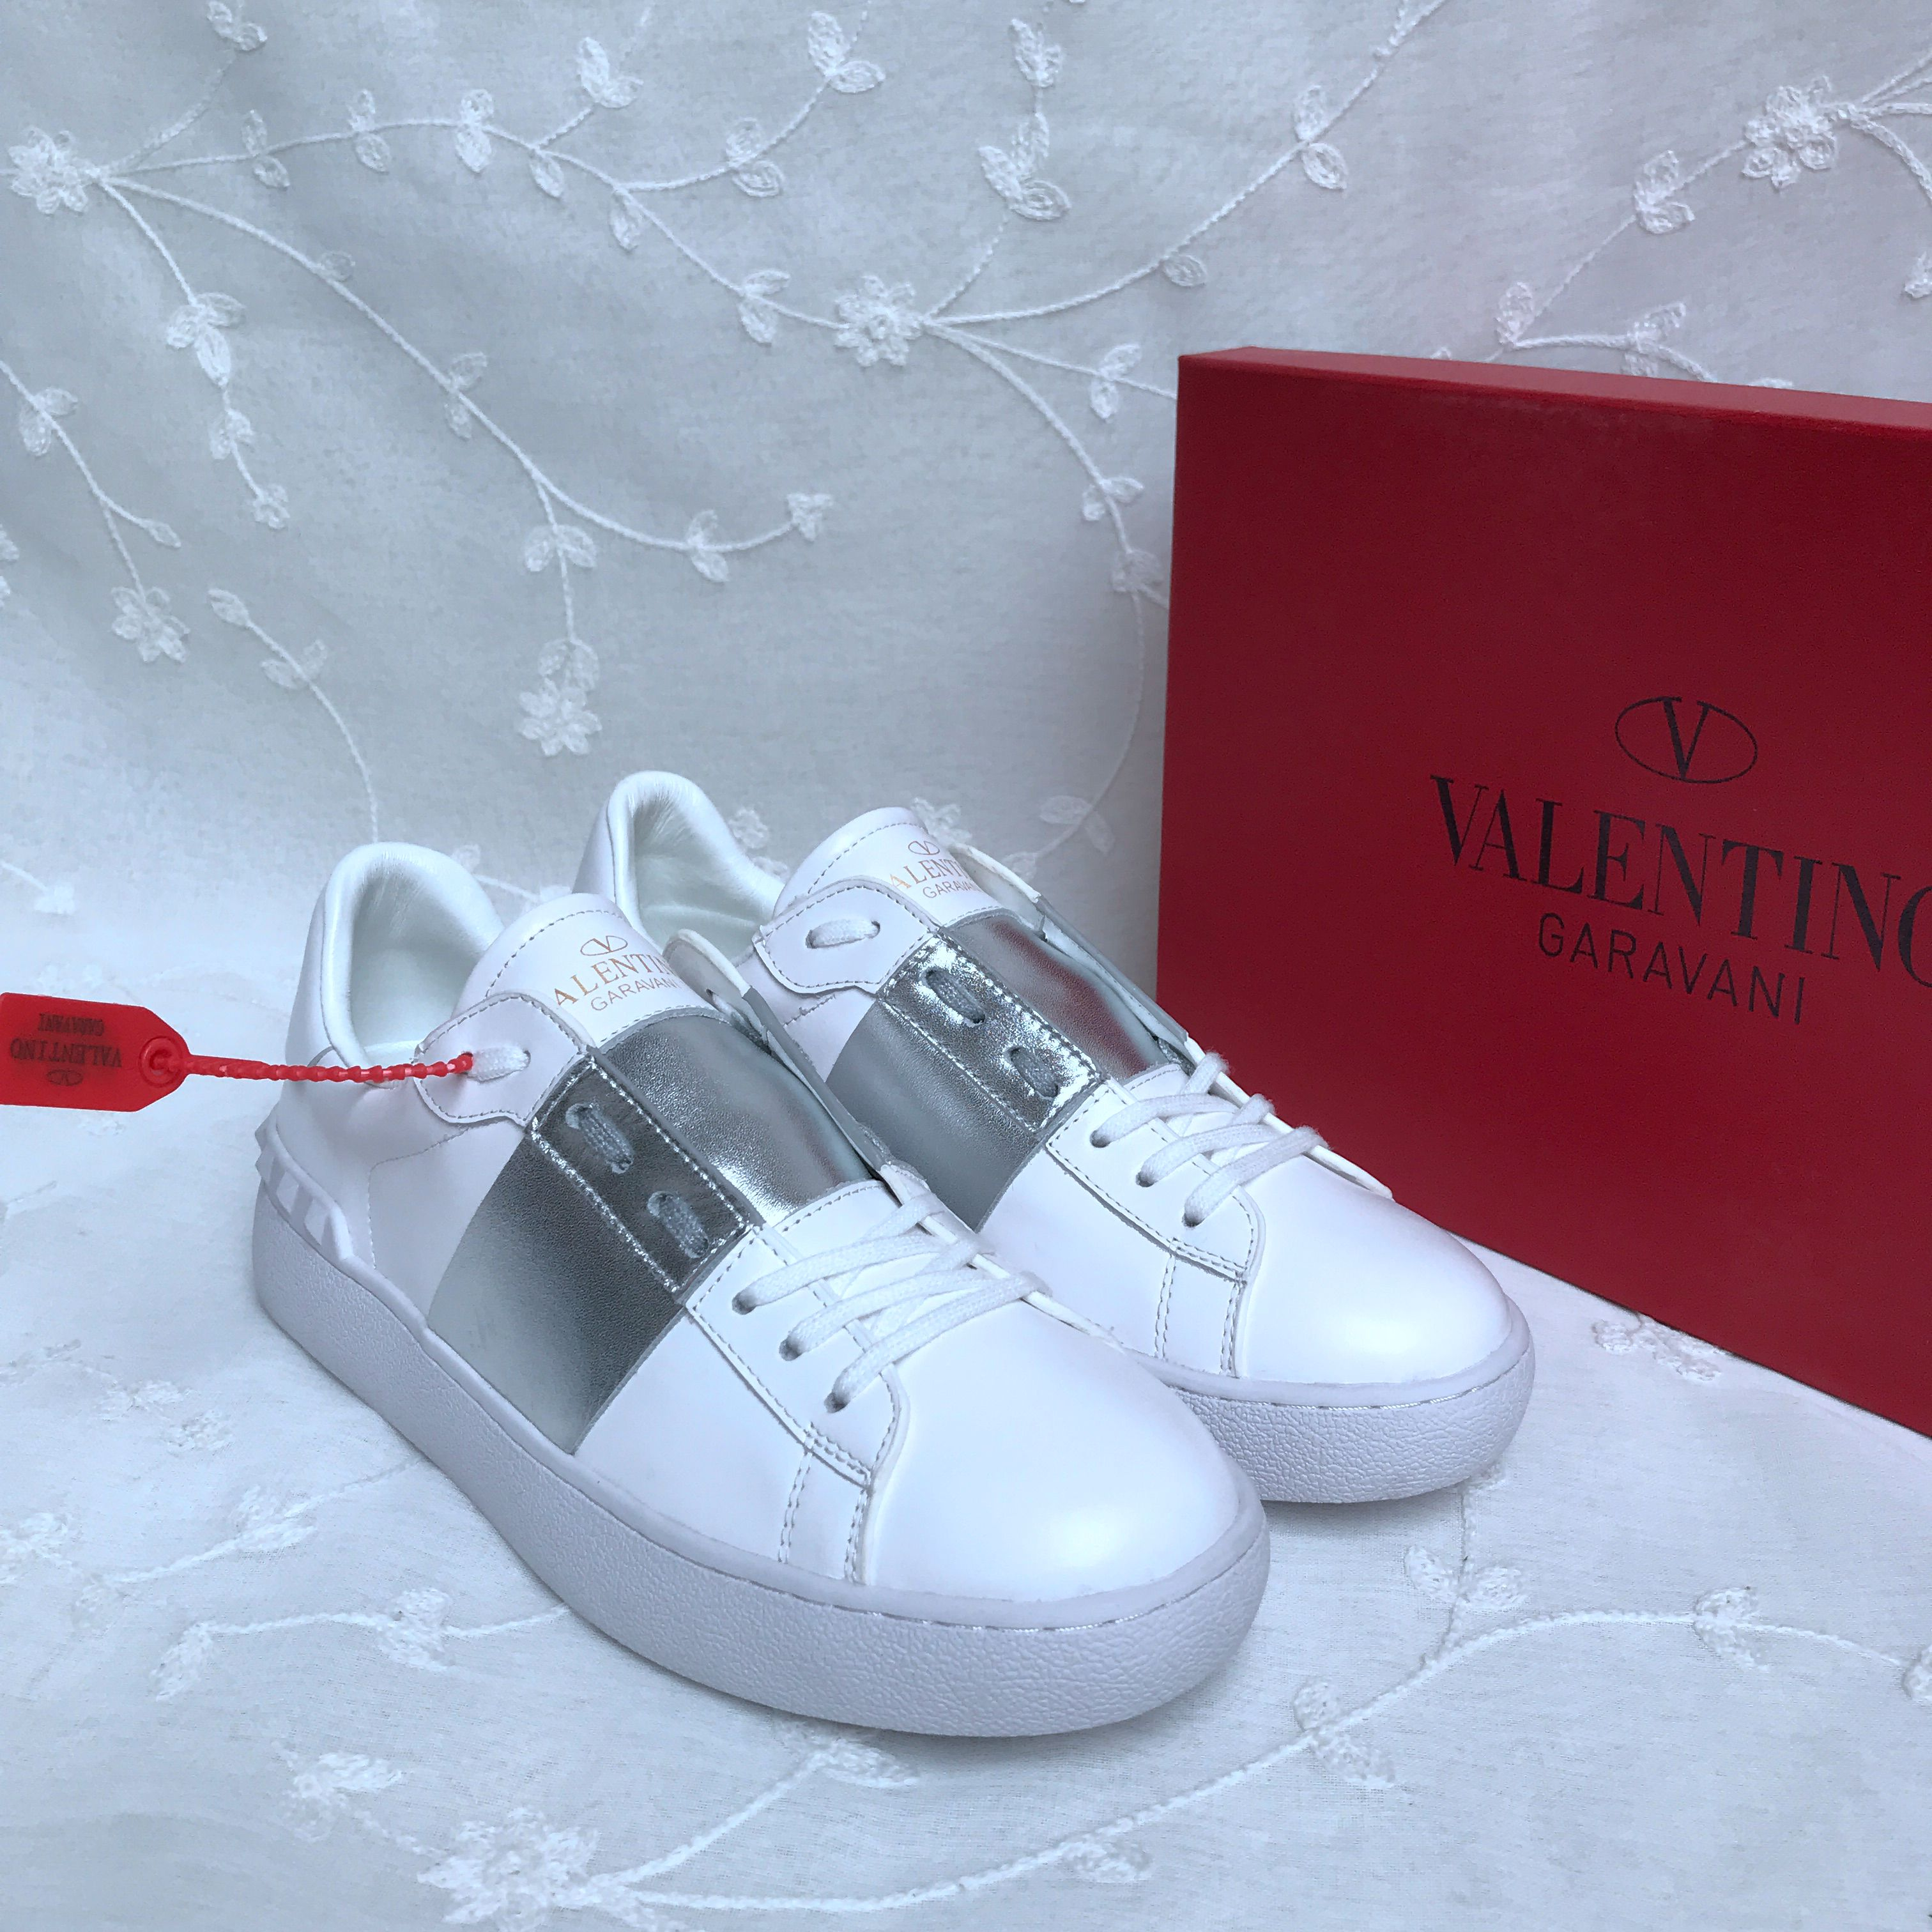 Valentino Casual Shoes 452123